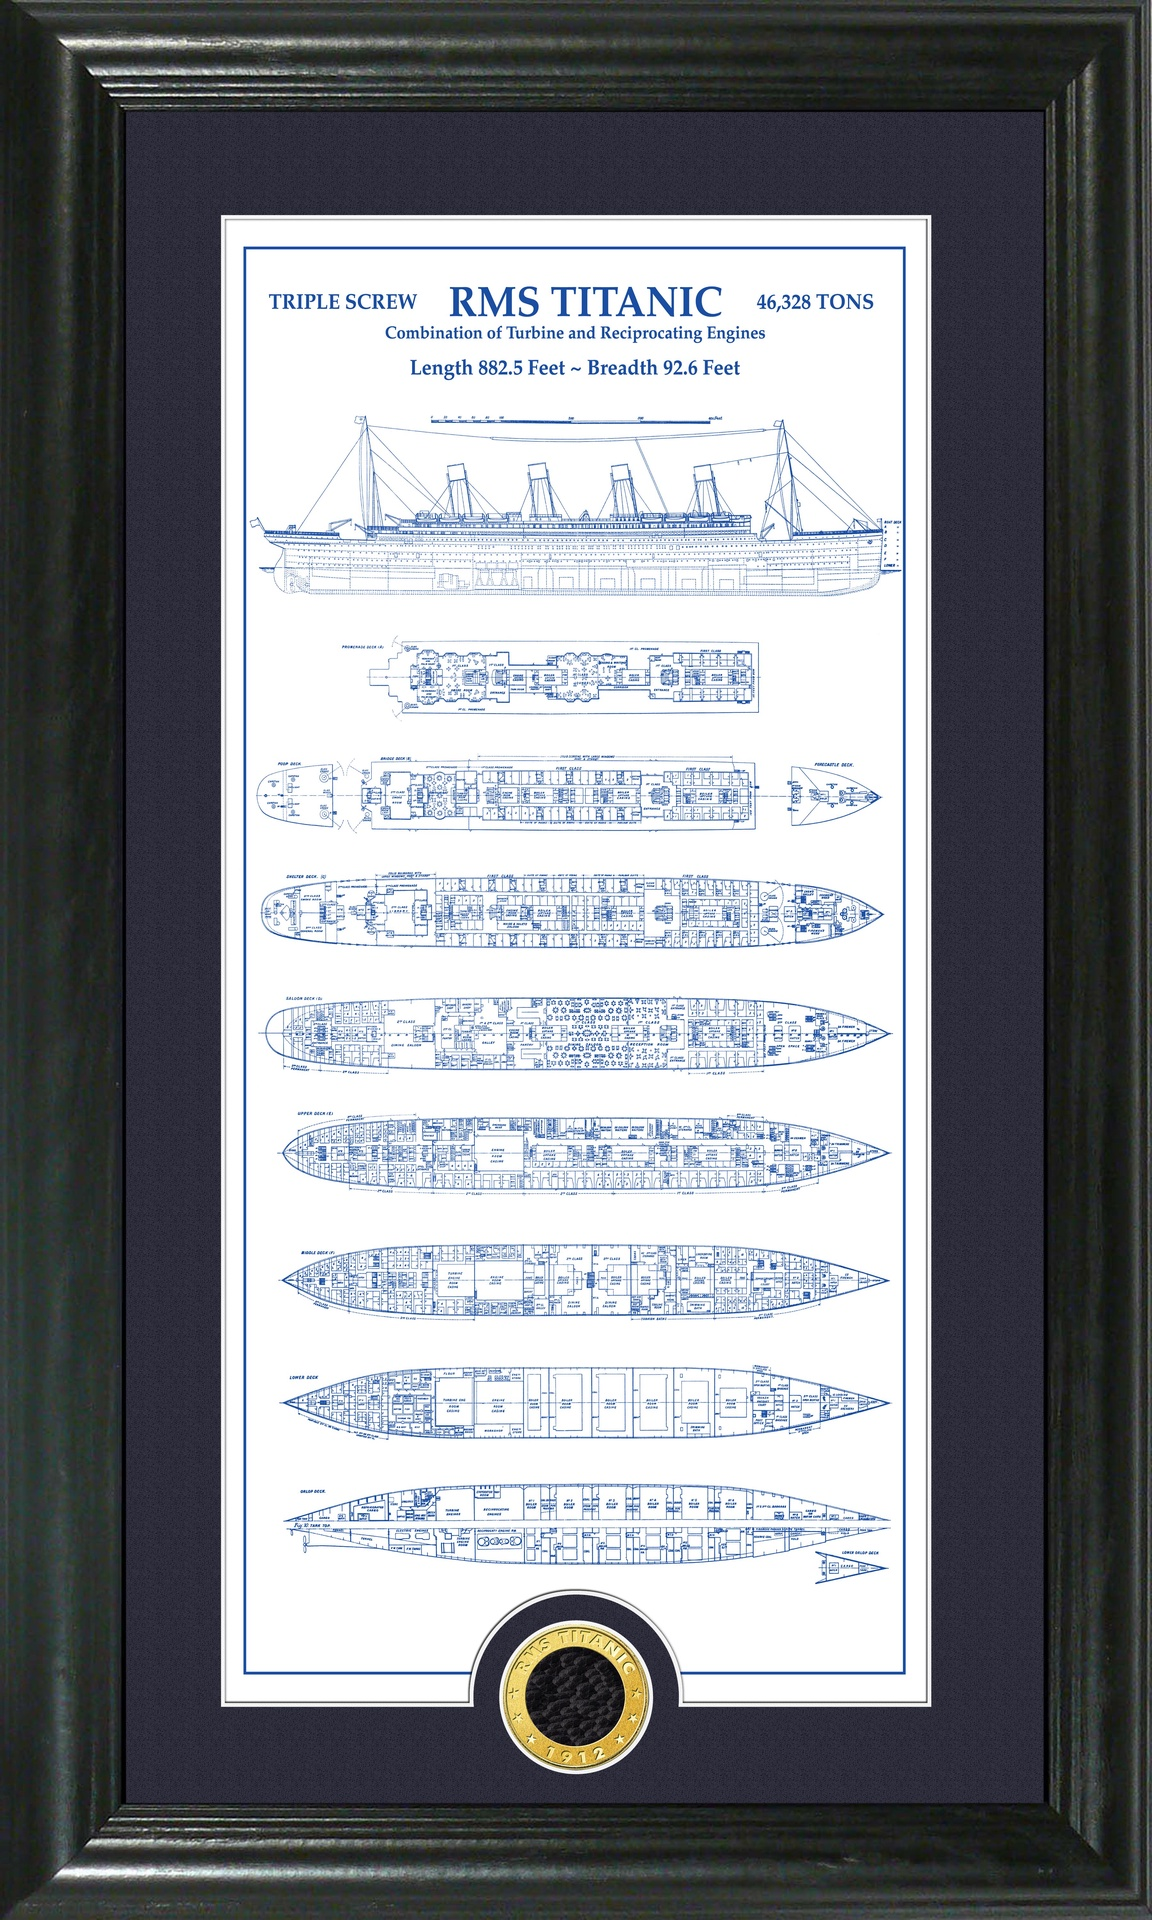 Photo Mint 12 x 20 Framed RMS Titanic Blue Print w/Coal